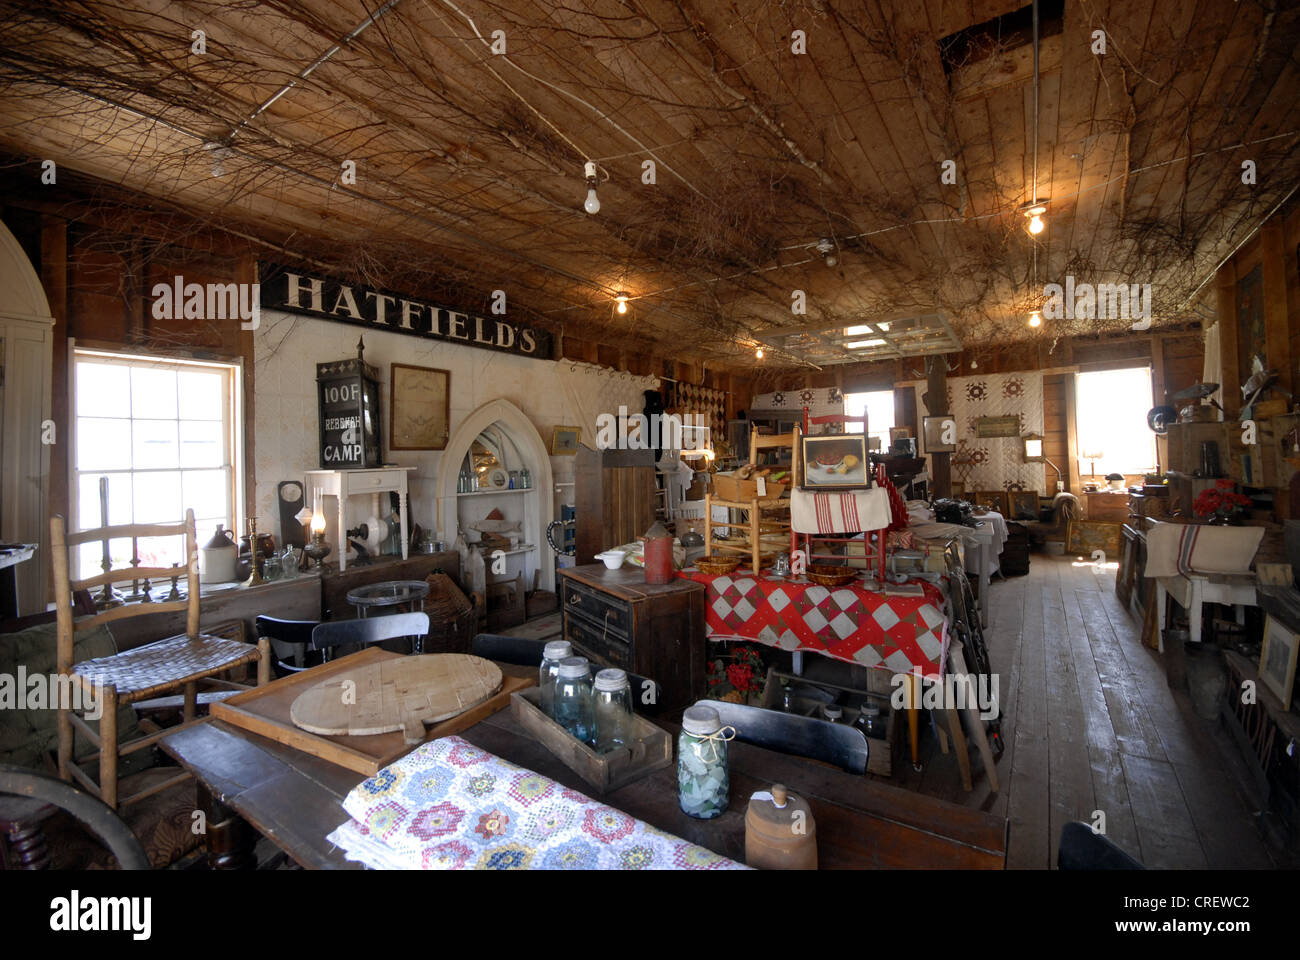 Interior Of An Antique Shop In Great Village Nova Scotia Stock Photo Royalty Free Image